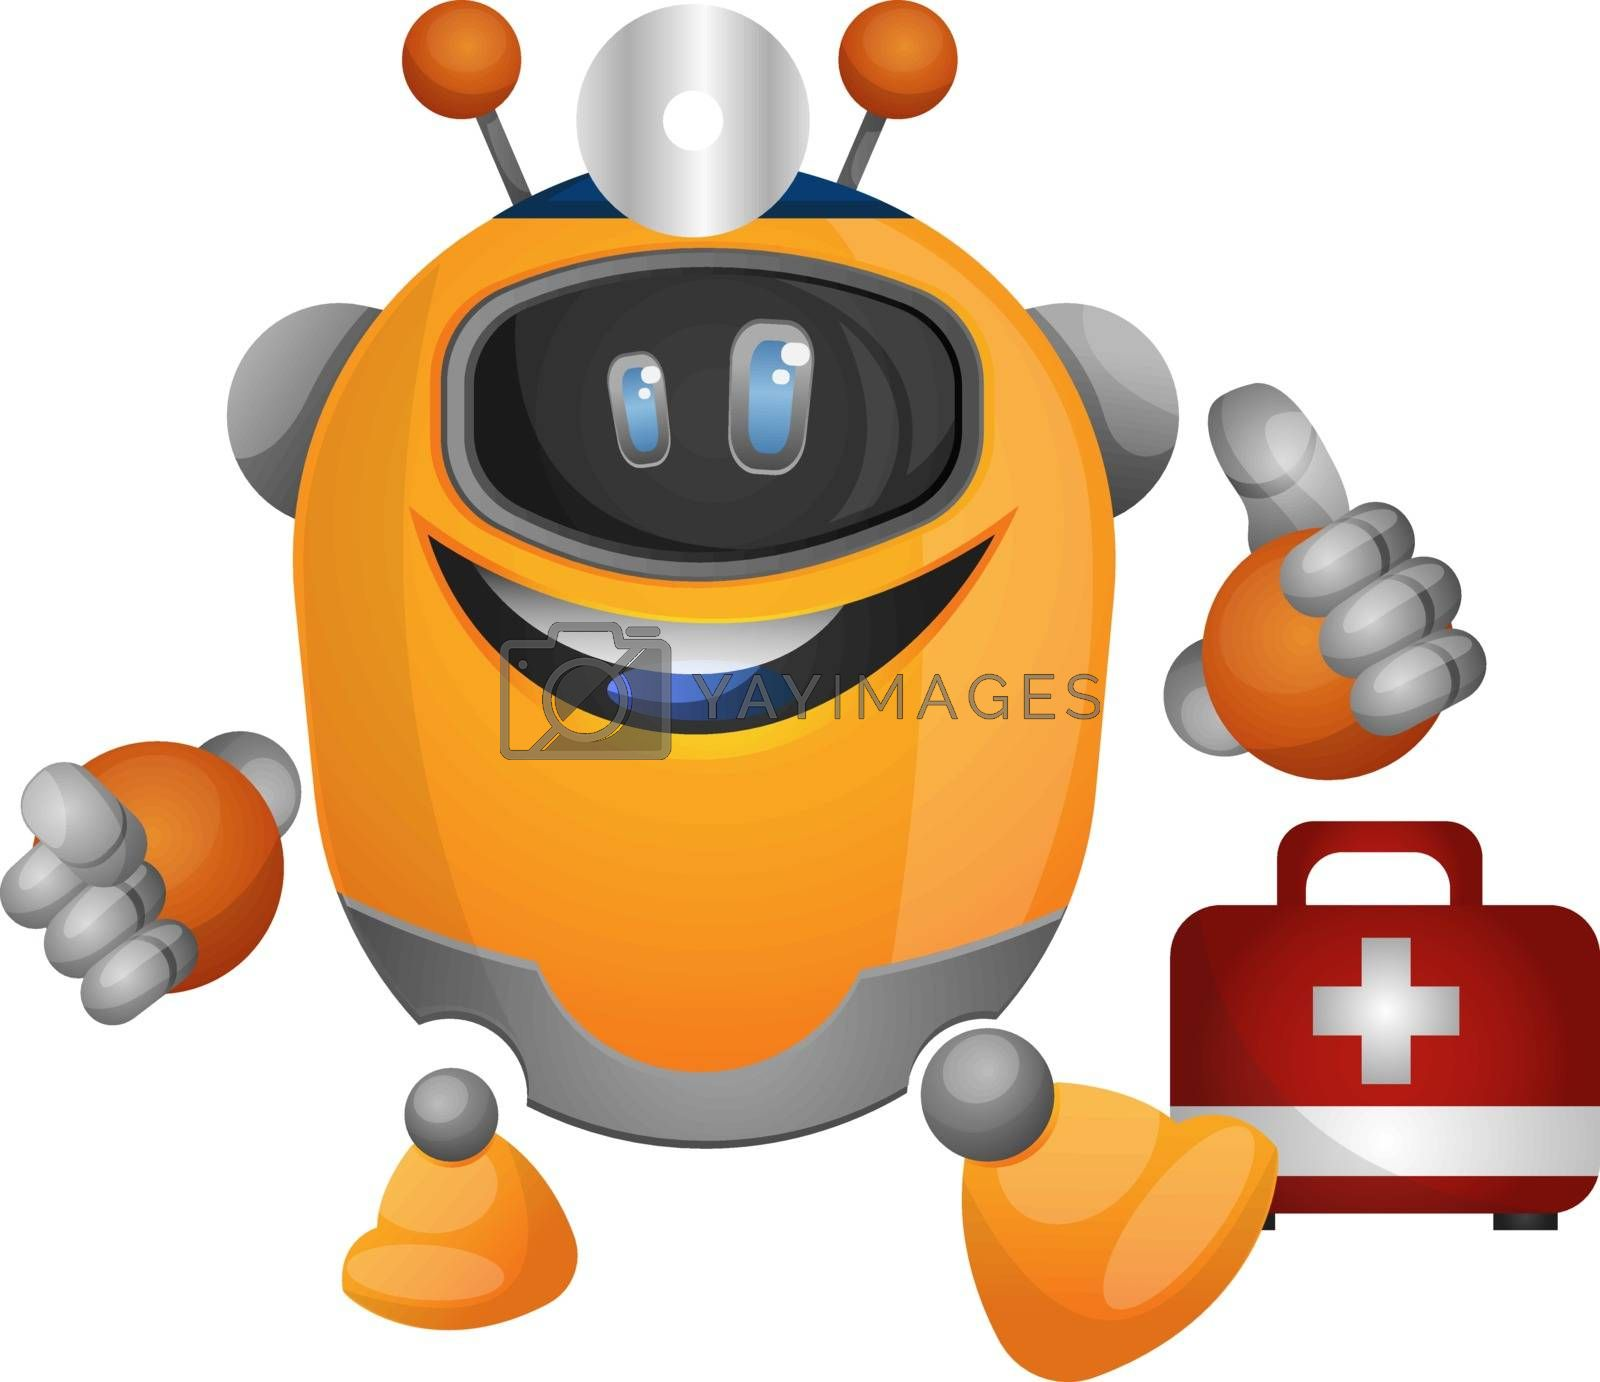 Royalty free image of Robotic doctor illustration vector on white background by Morphart